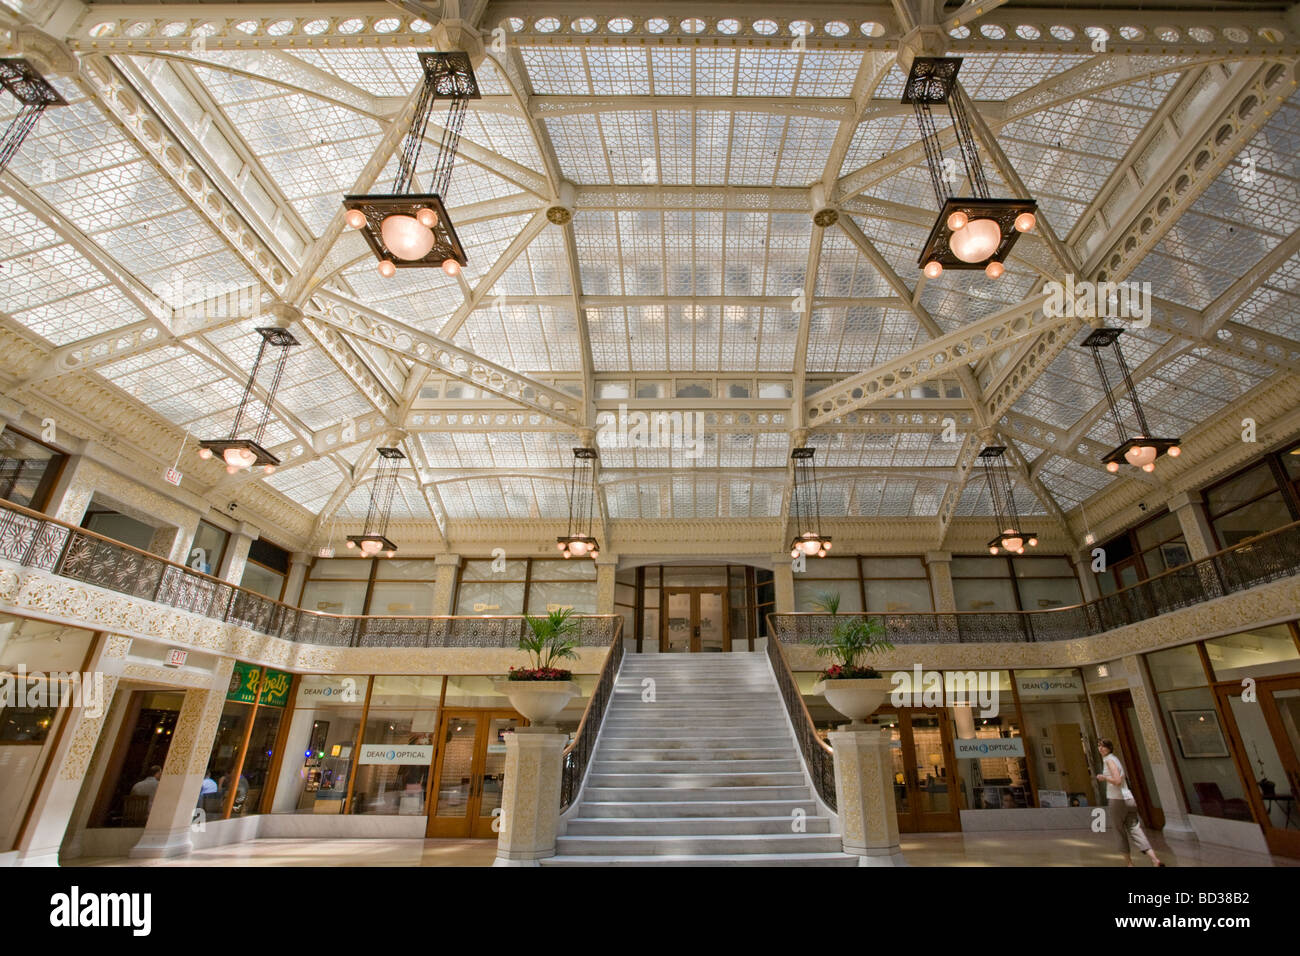 The Rookery Building Frank Lloyd Wright remodeled interior Chicago Illinois Stock Photo